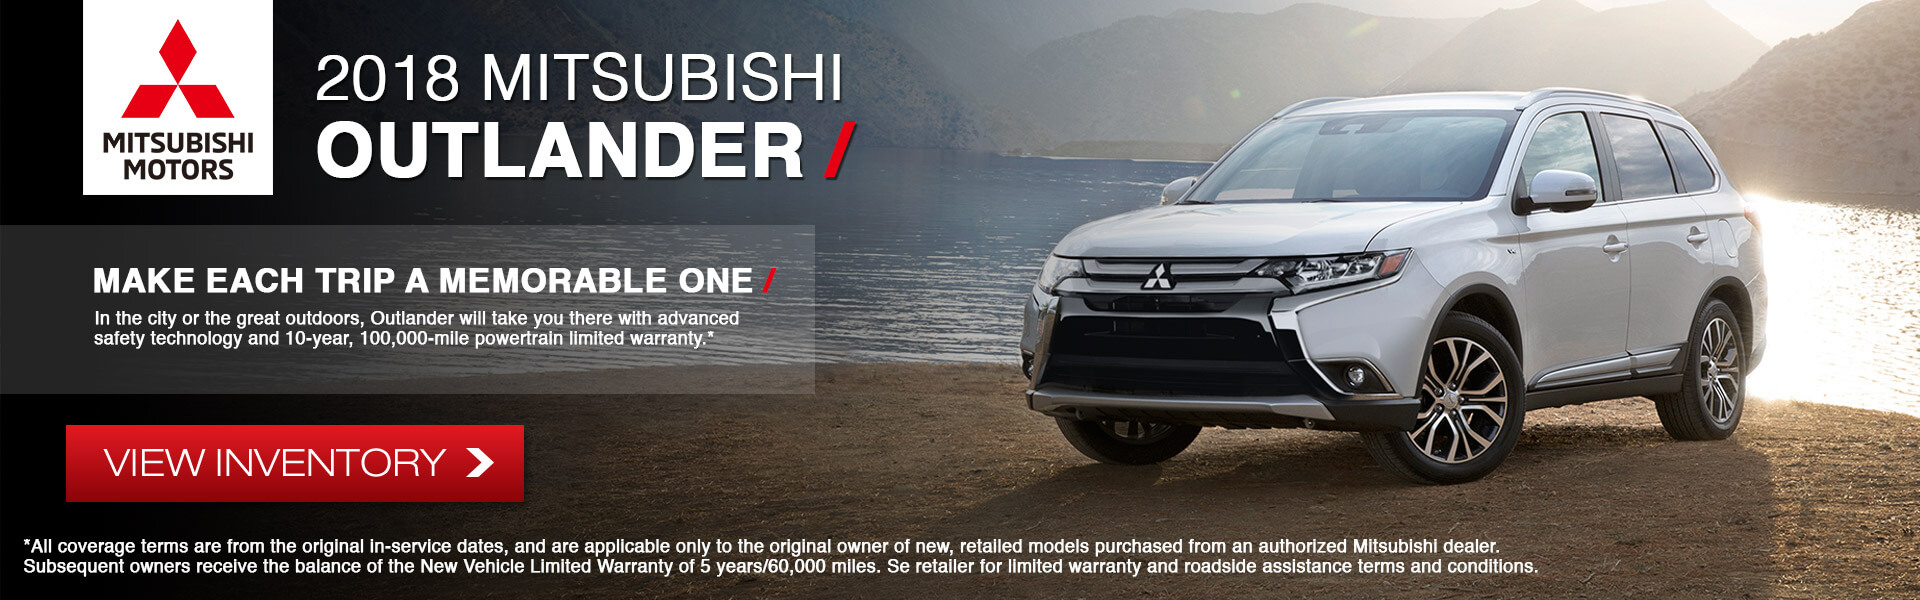 2018 Mitsubishi Outlander Evergreen